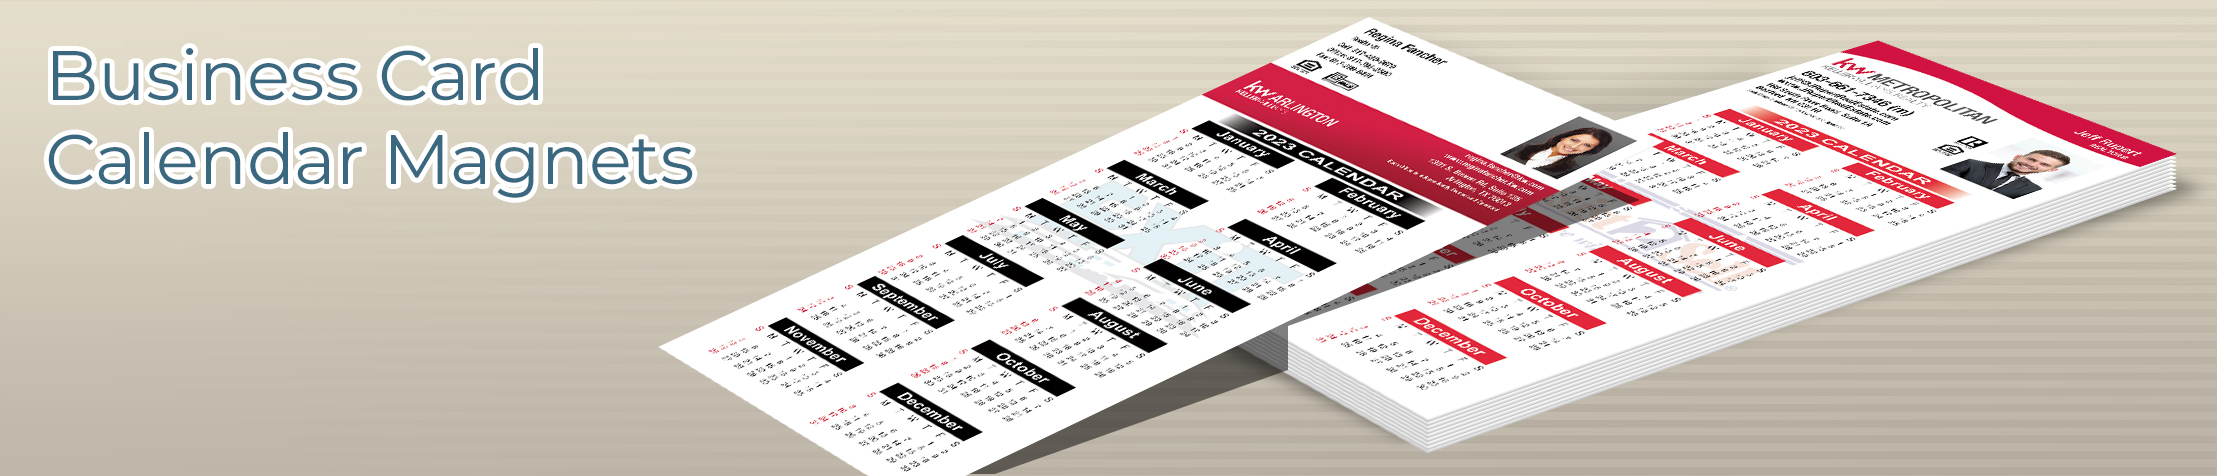 Keller Williams Real Estate Business Card Calendar Magnets - KW approved vendor 2019 calendars with photo and contact info | BestPrintBuy.com